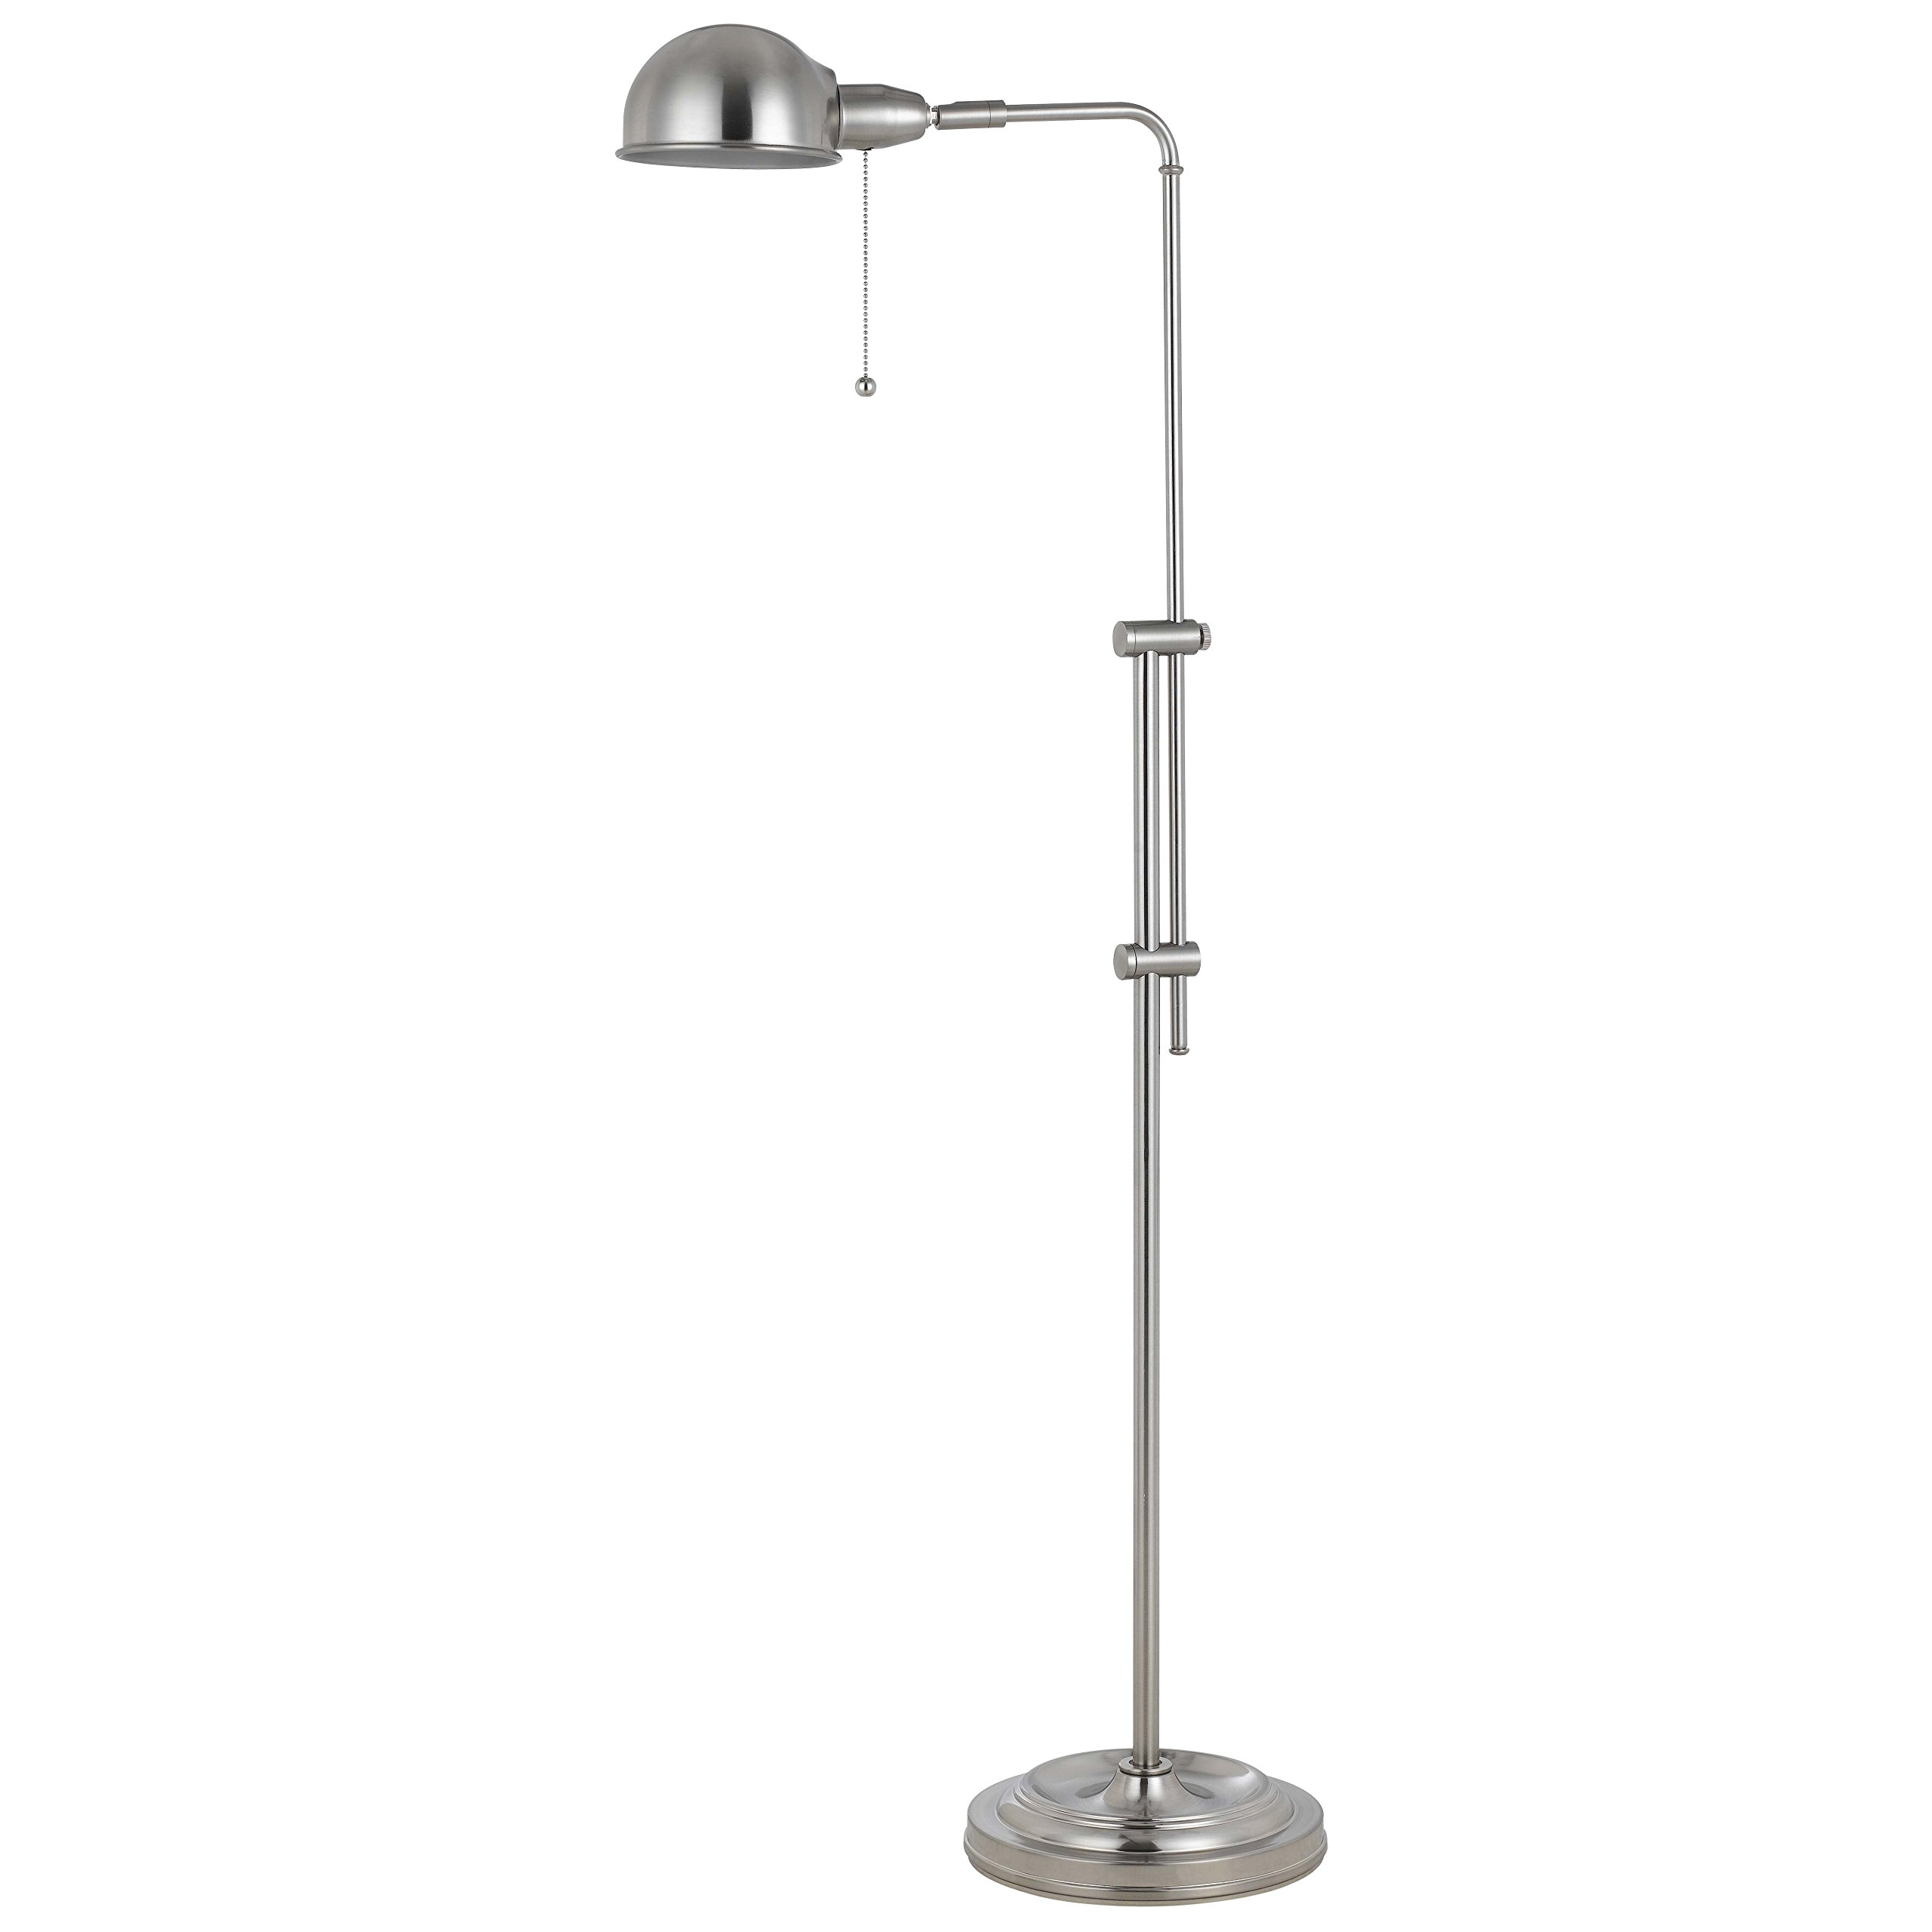 58-Inch Rustic Adjustable Pharmacy Floor Lamp with Pull-Chain Switch for Reading Corner - Brushed Steel Finish